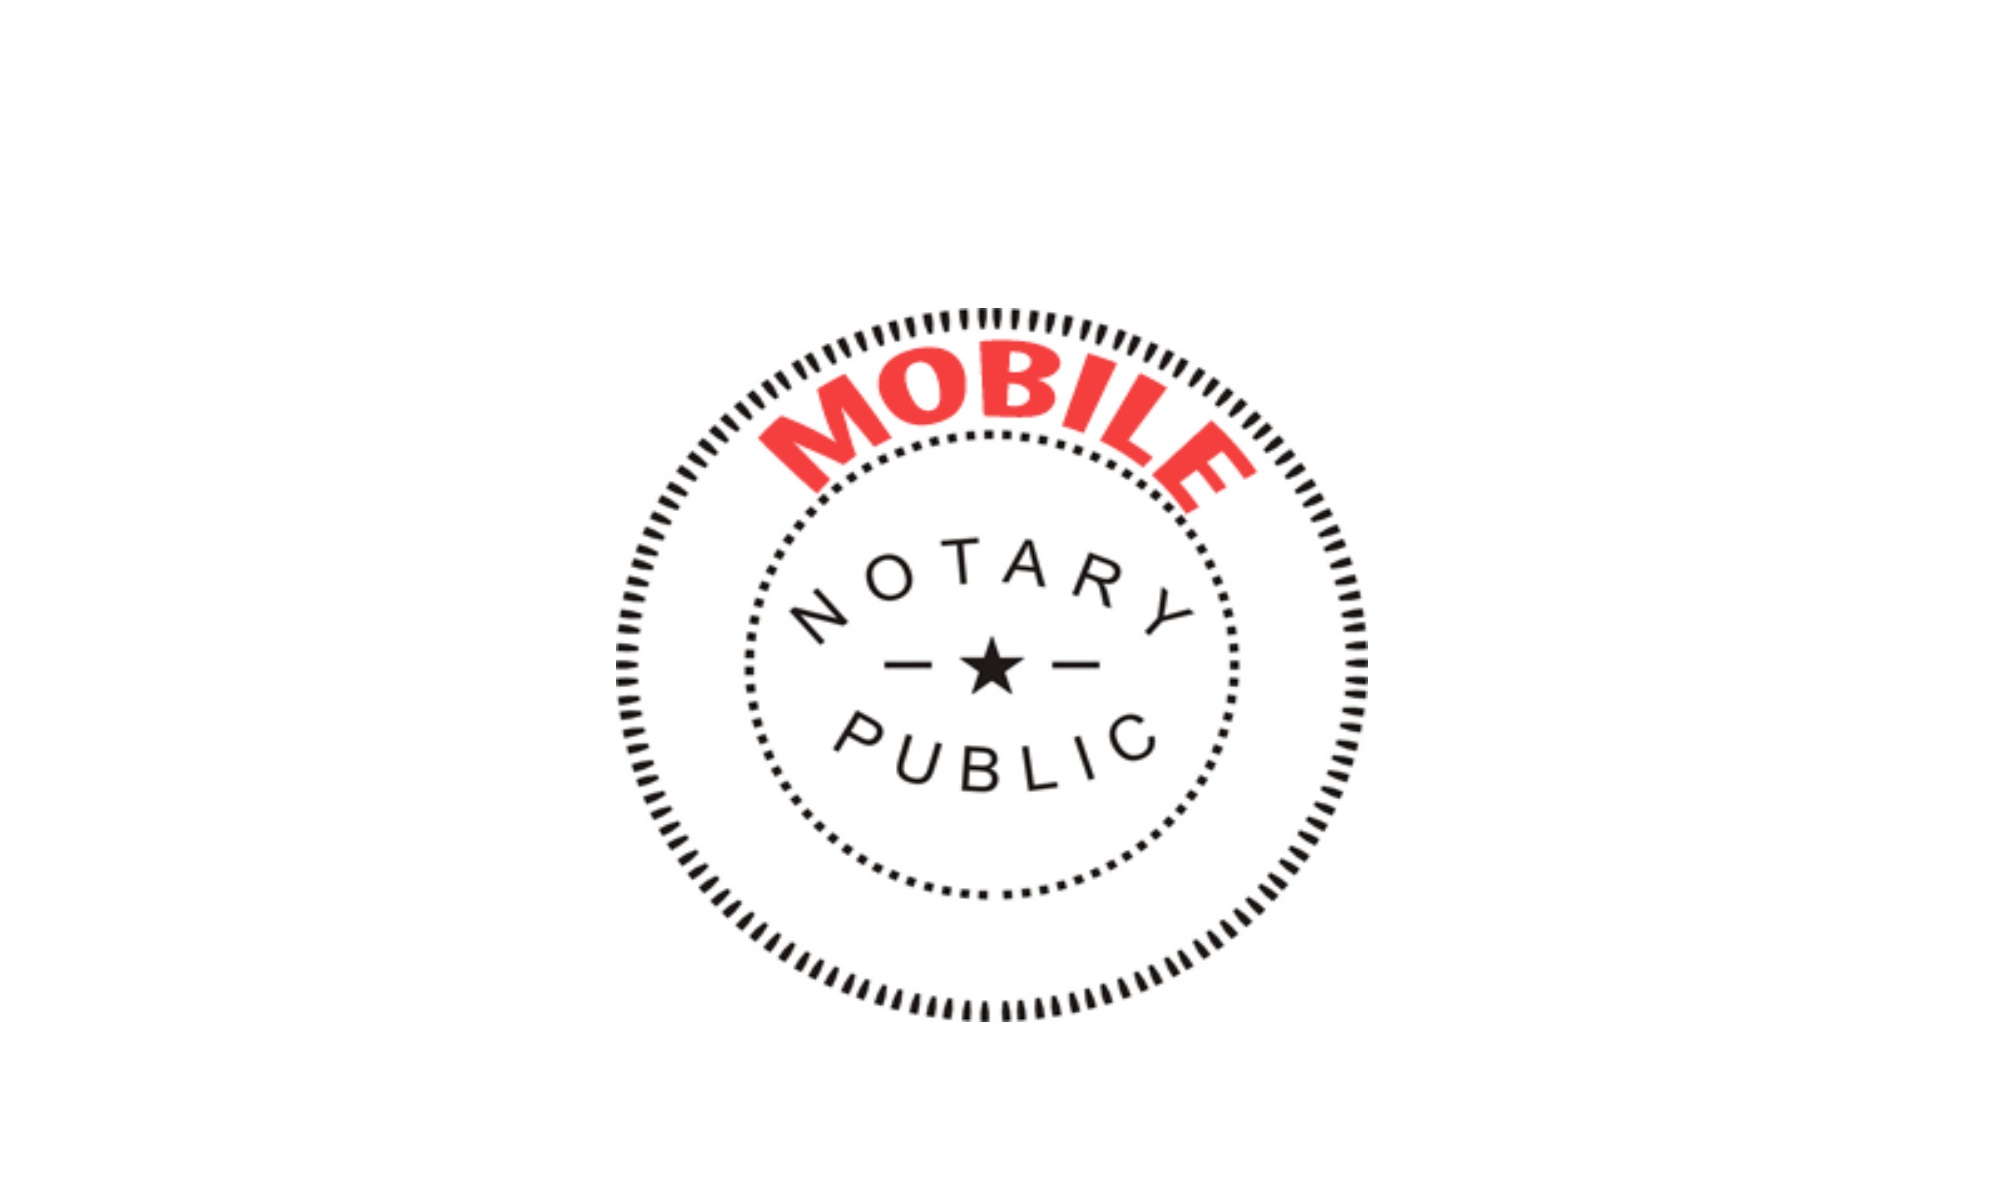 Schedule a Mobile Notary